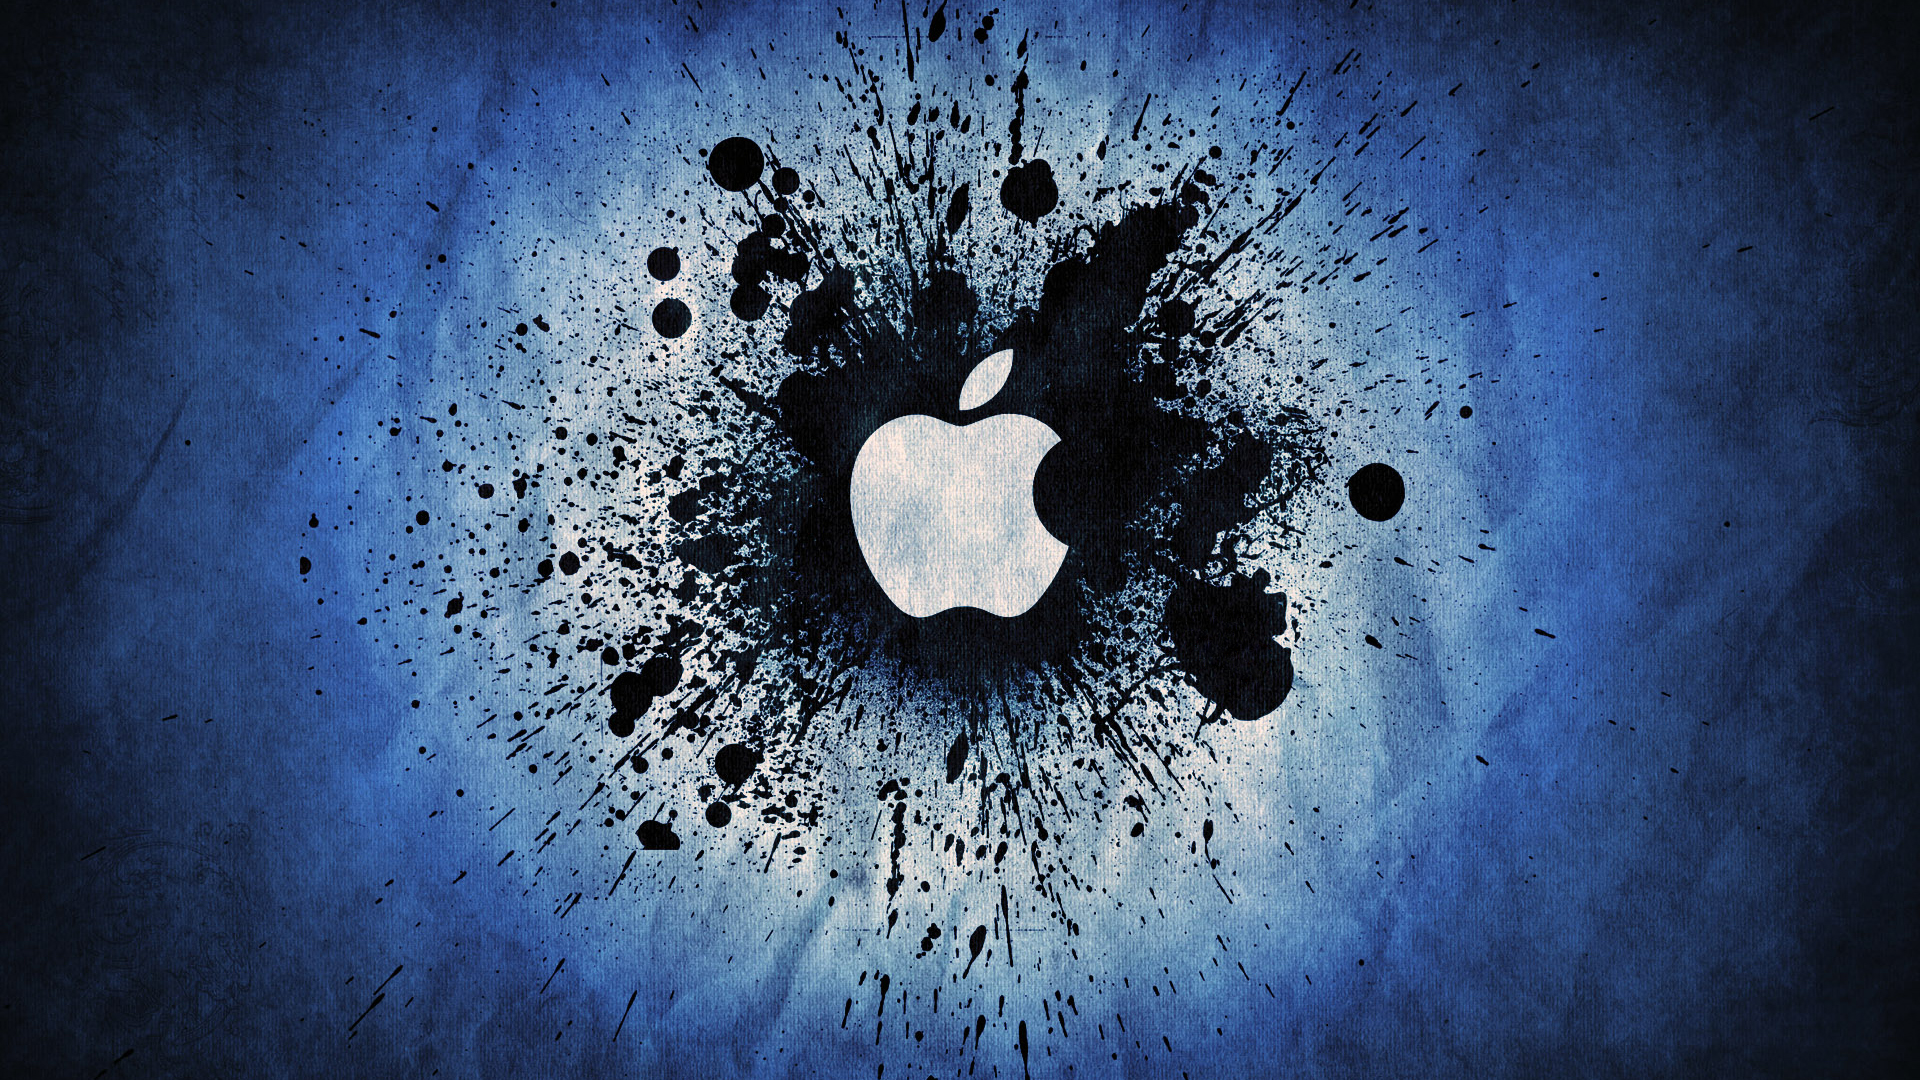 Apple-Black-Abstract-Hd-Desktop-1920%C3%971080-wallpaper-wpc9002323